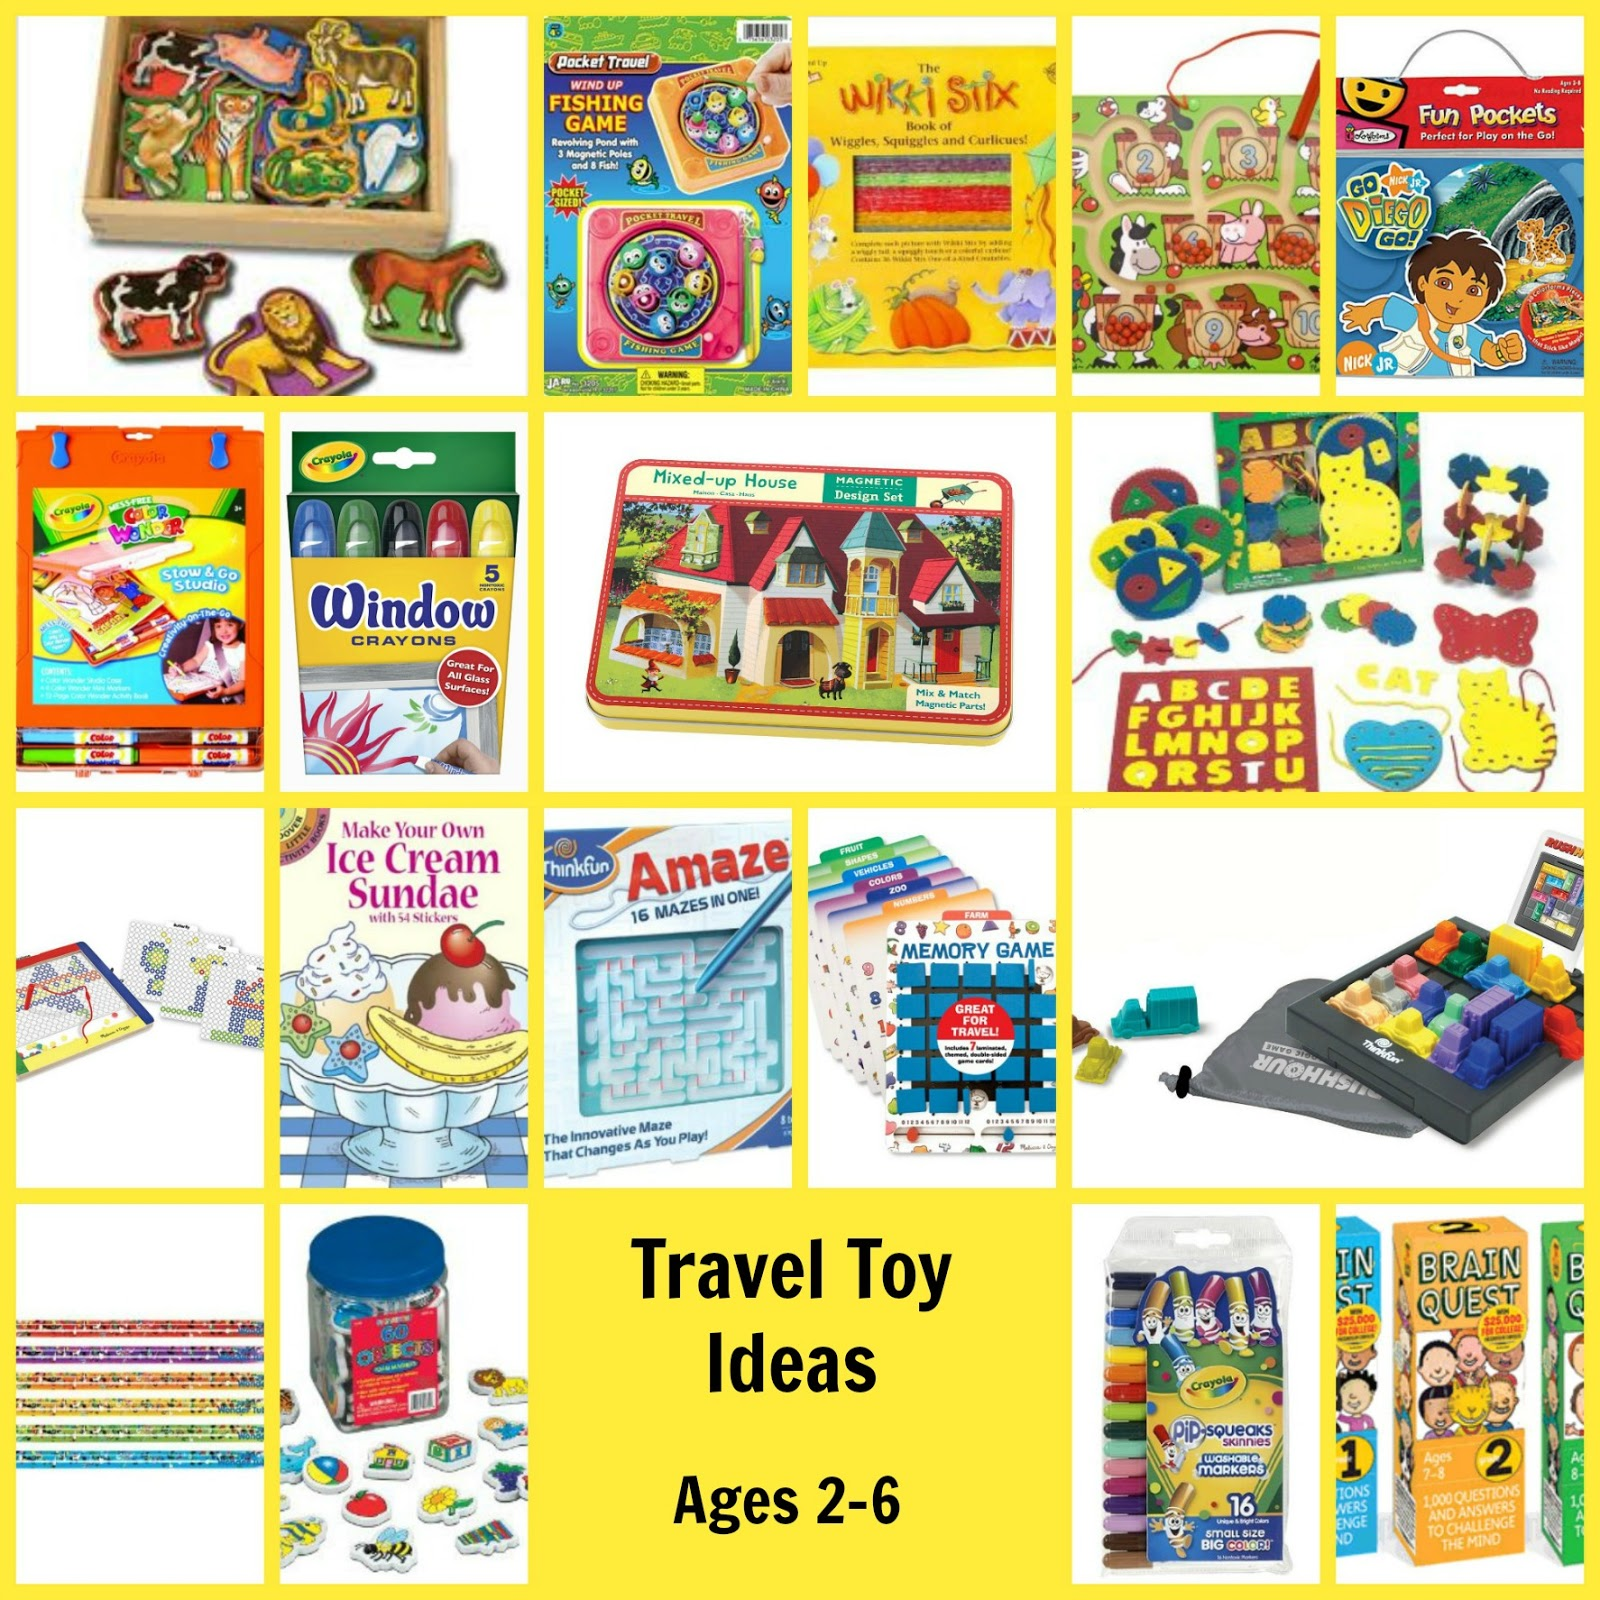 Toys For Travel : Best practices of traveling long distances with kids